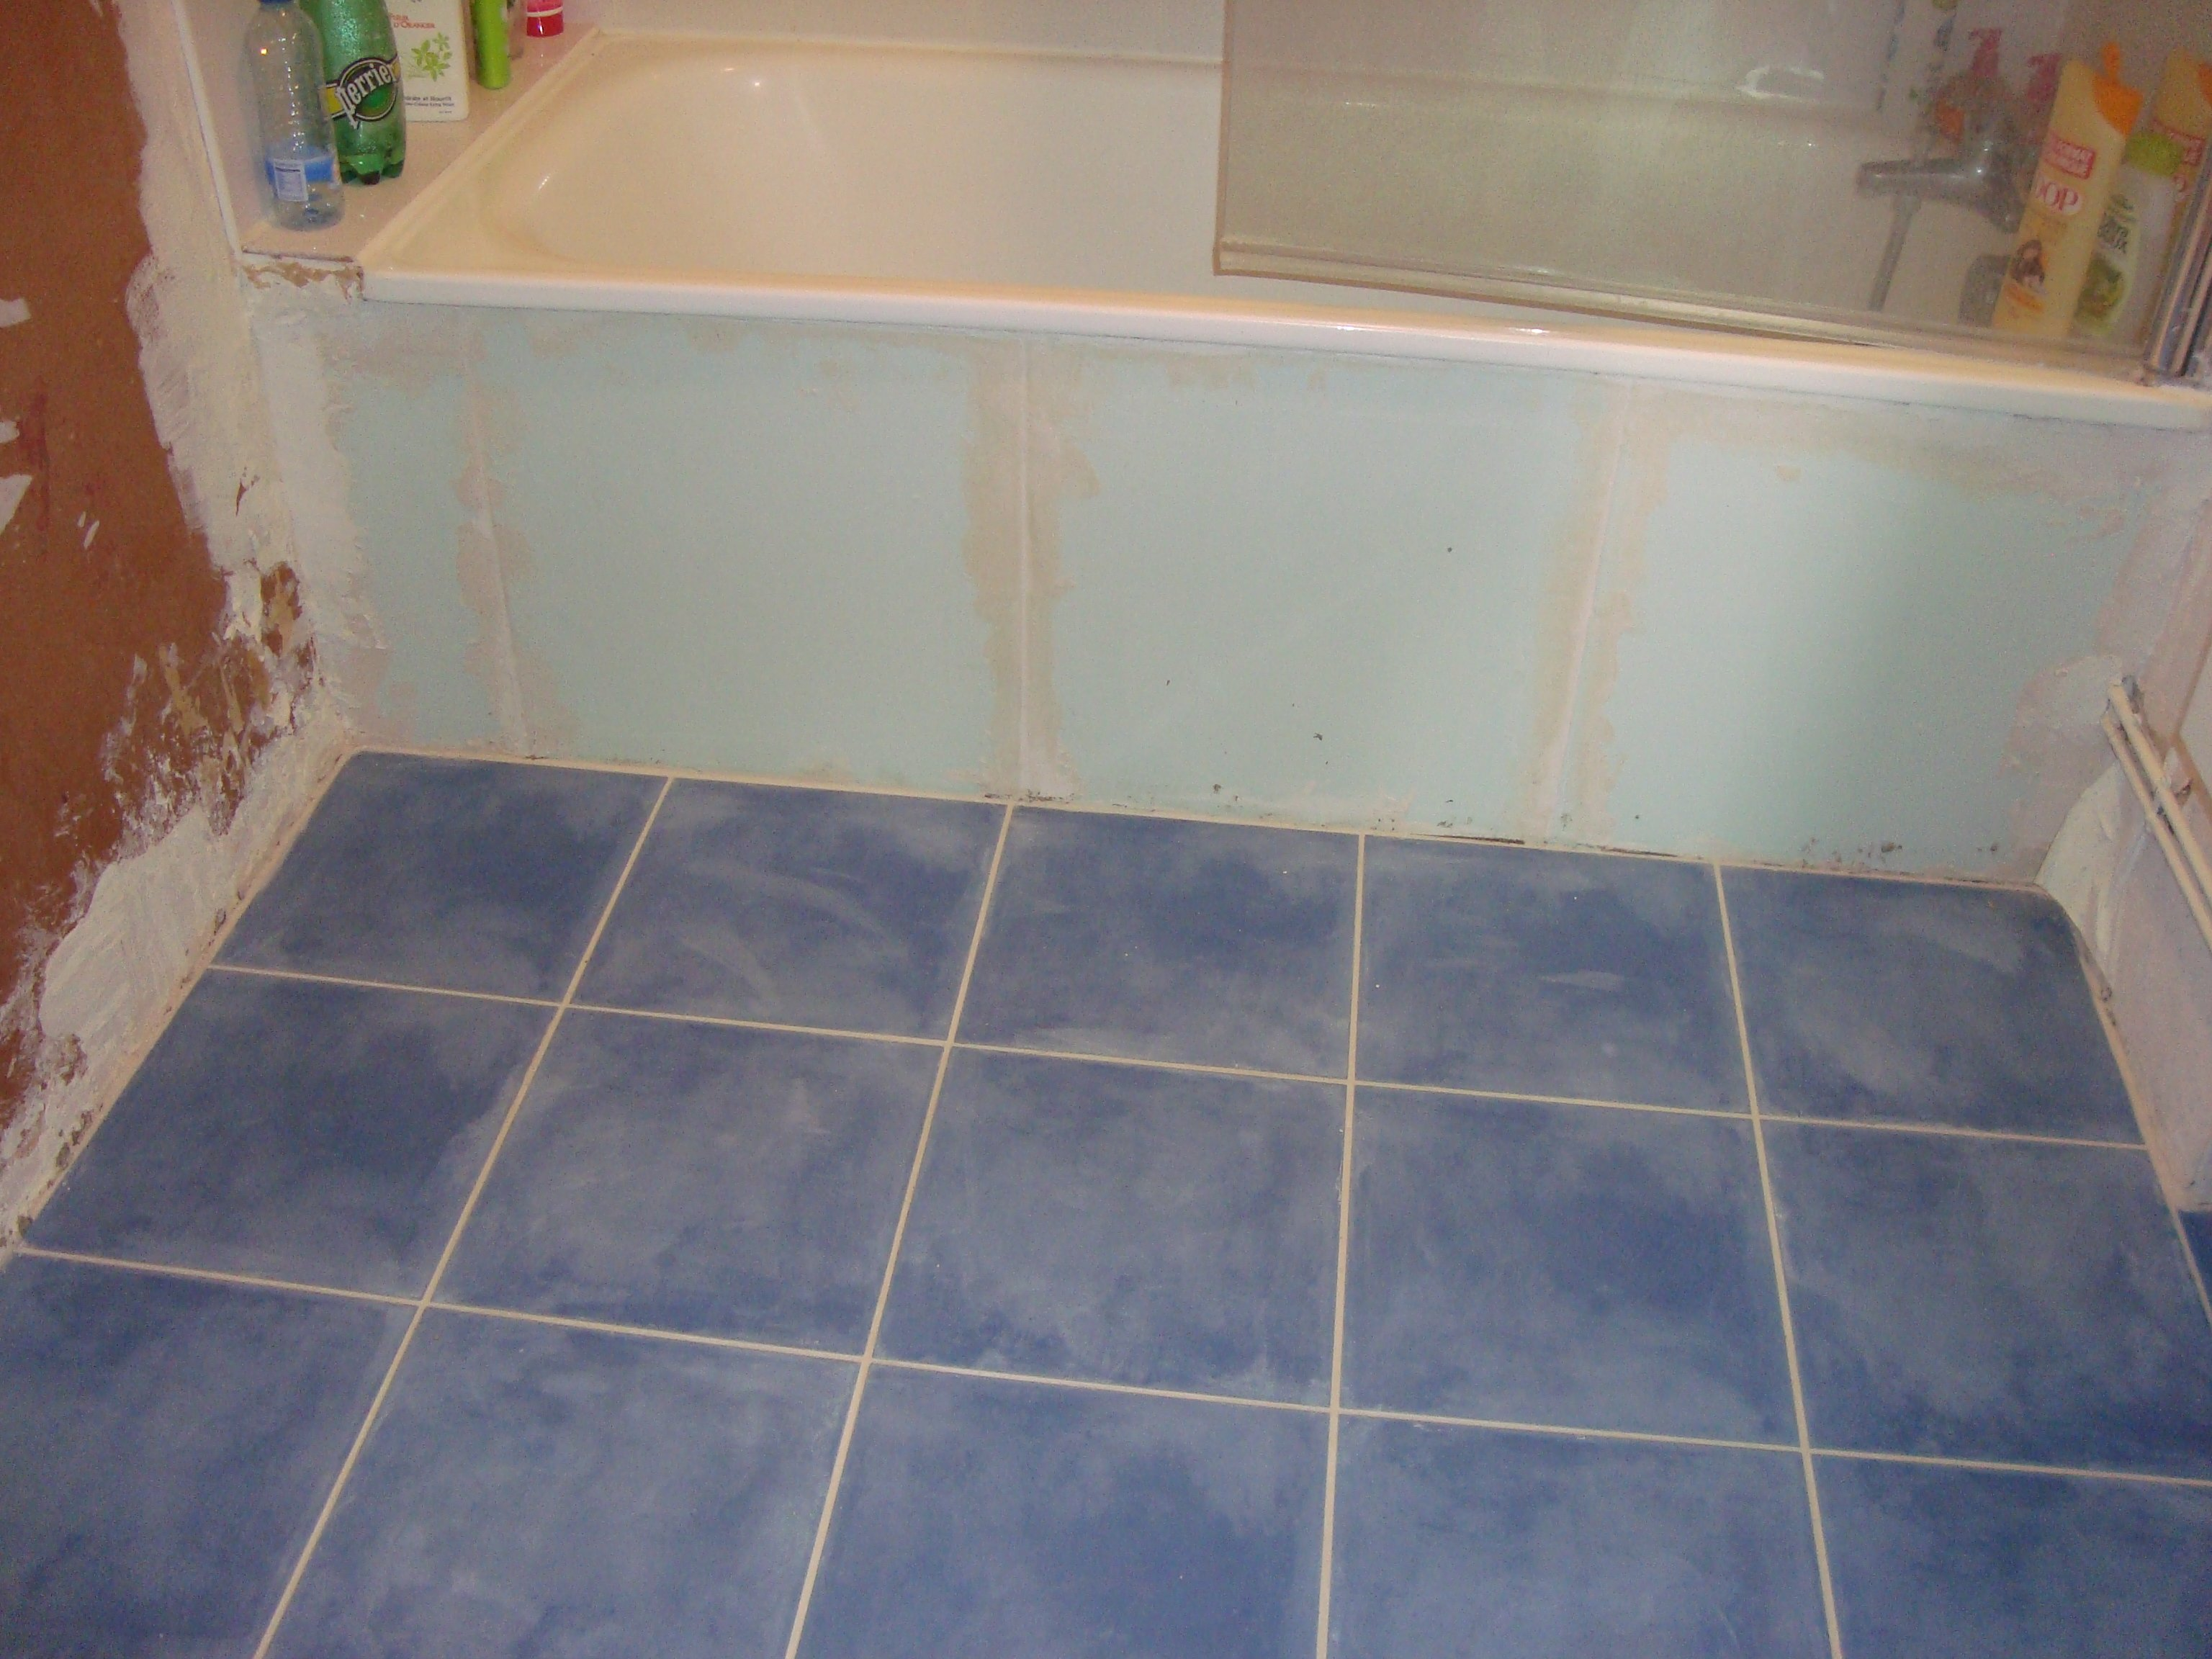 R novation d un appartement for Joint carrelage sol salle de bain